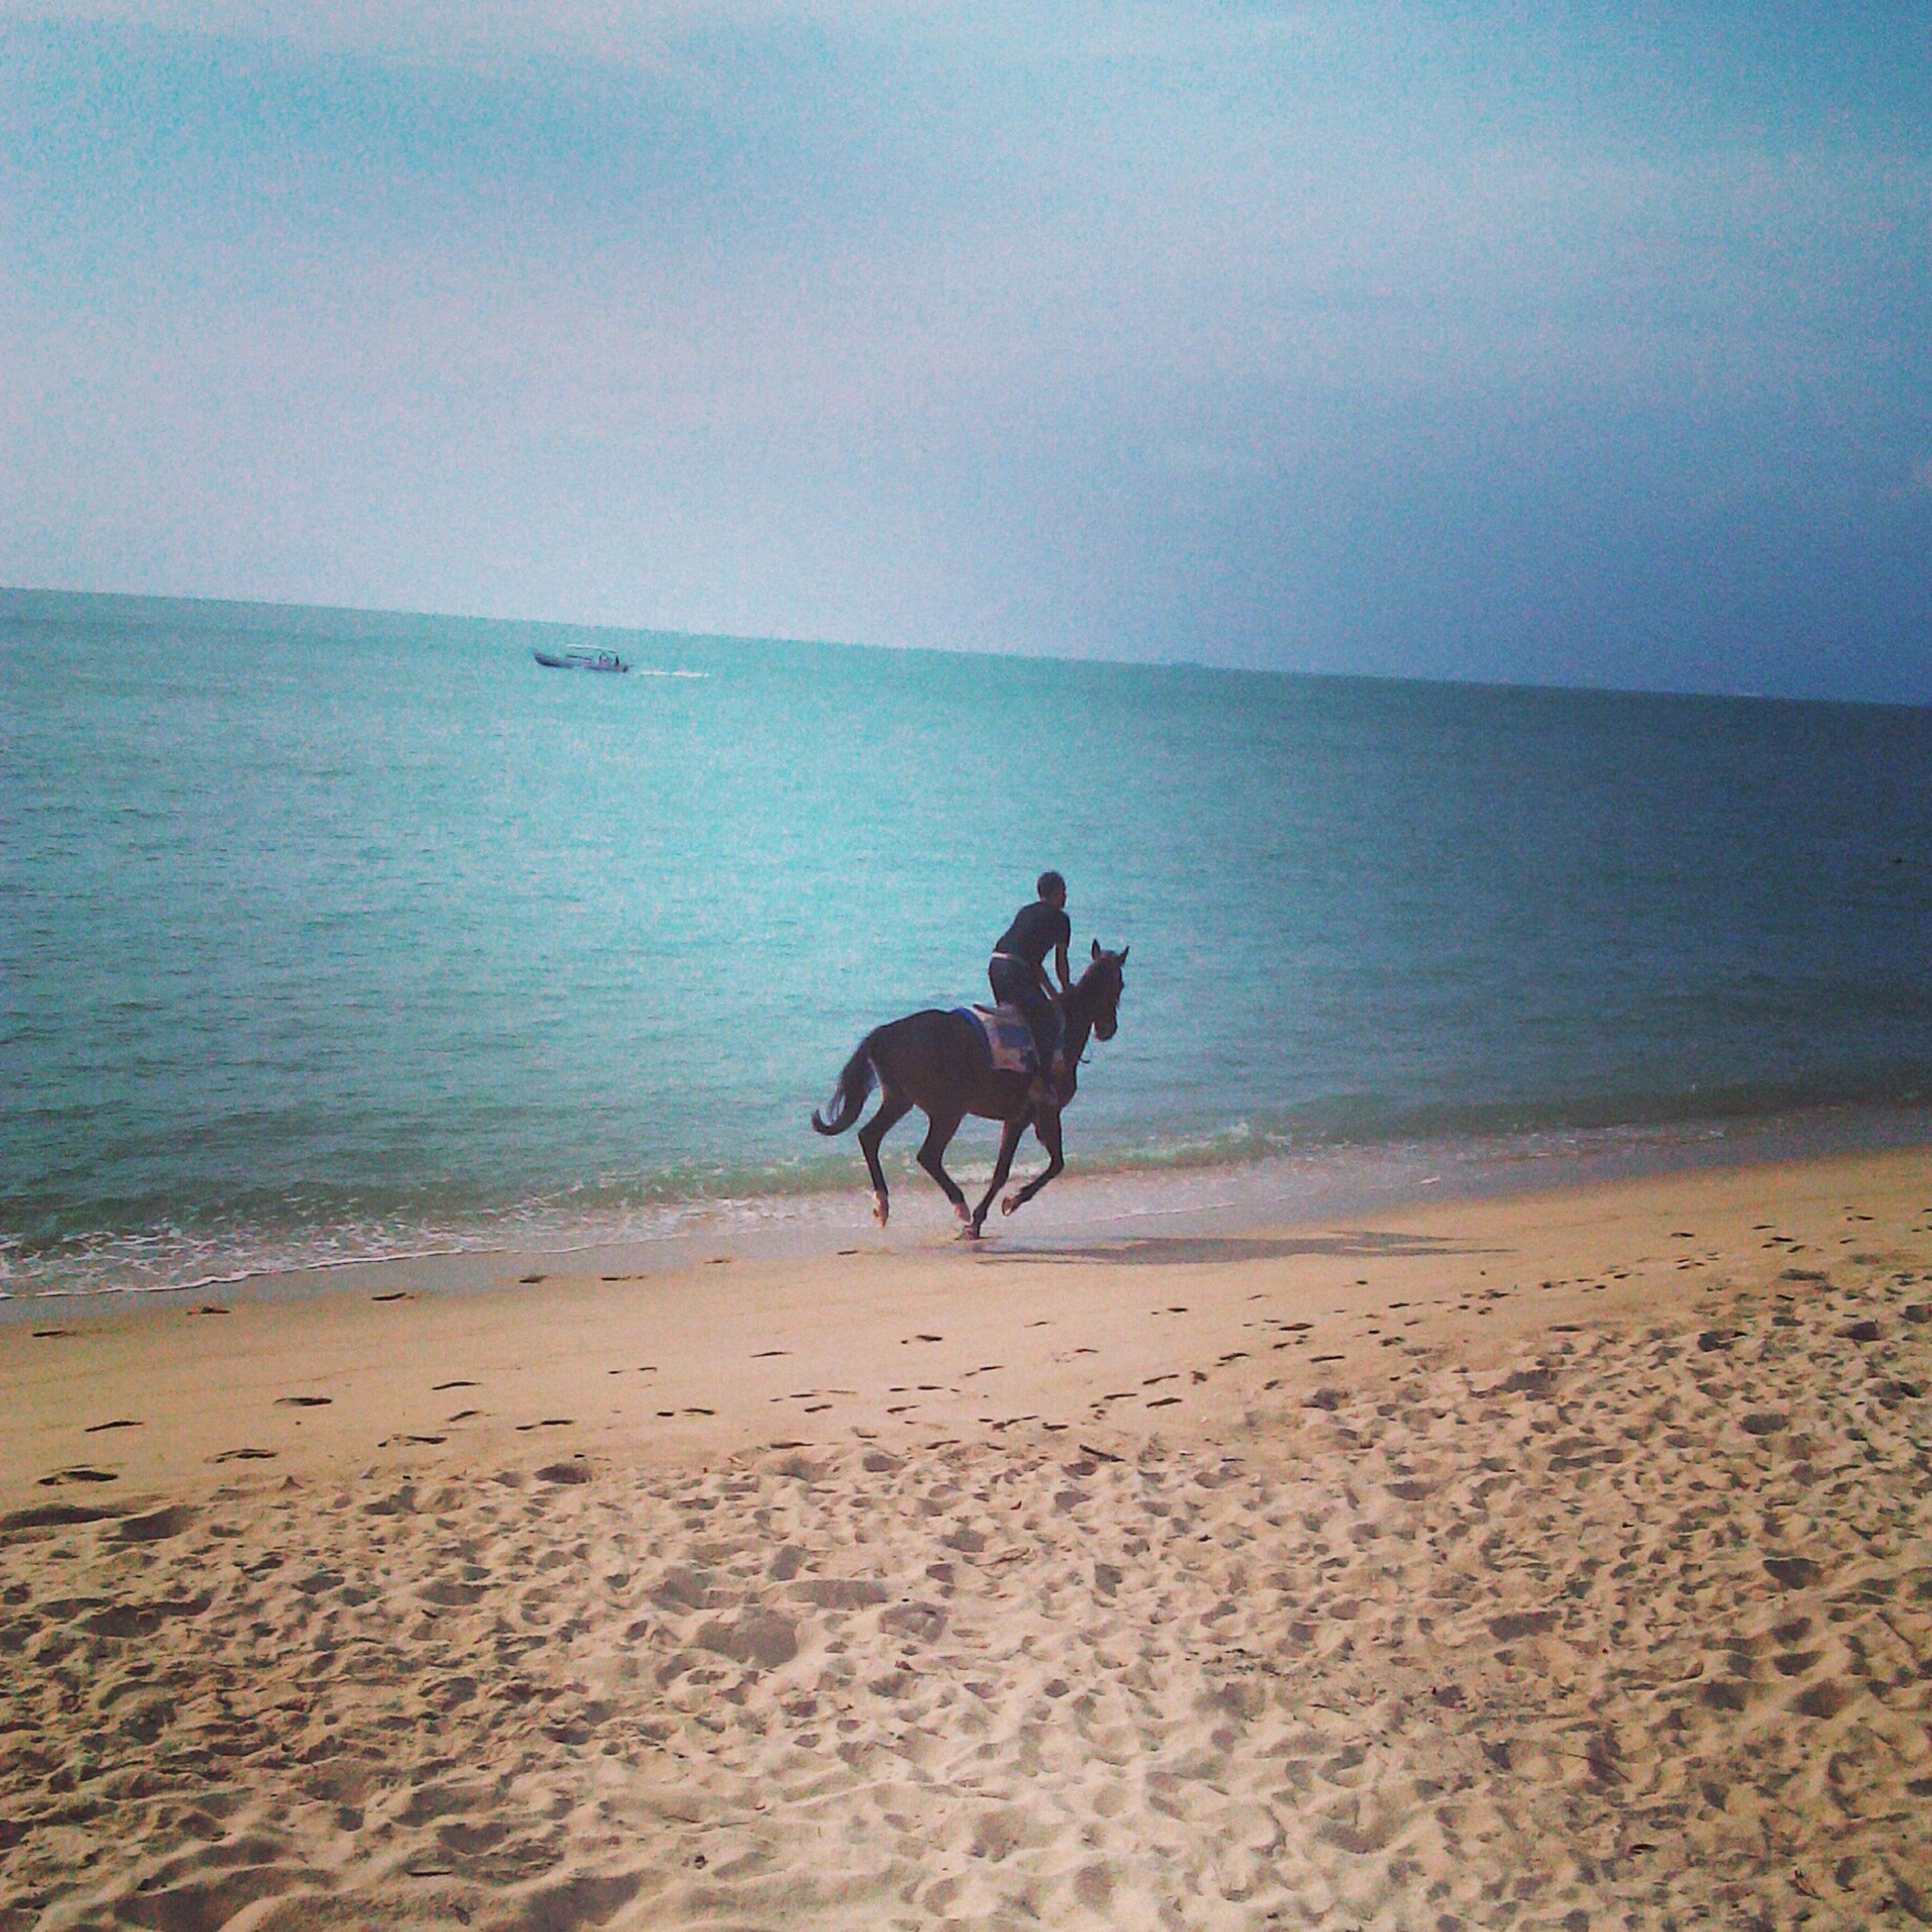 beach, sea, domestic animals, animal themes, dog, mammal, sand, pets, water, horizon over water, shore, one animal, sky, nature, full length, tranquil scene, tranquility, scenics, beauty in nature, horse